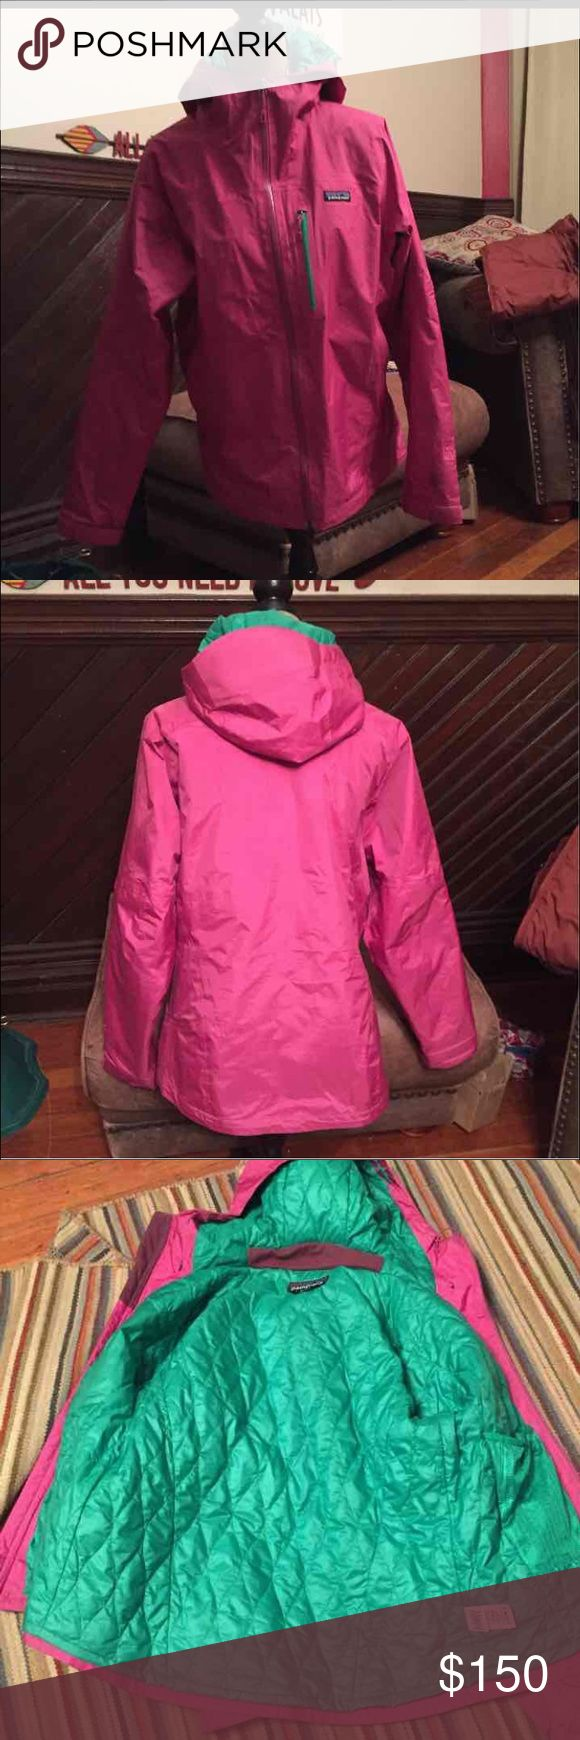 Patagonia ski jacket large This is a WONDERFUL jacket, super warm and comfy!  I wish it wasn't hot pink or I'd keep it! Patagonia Jackets & Coats